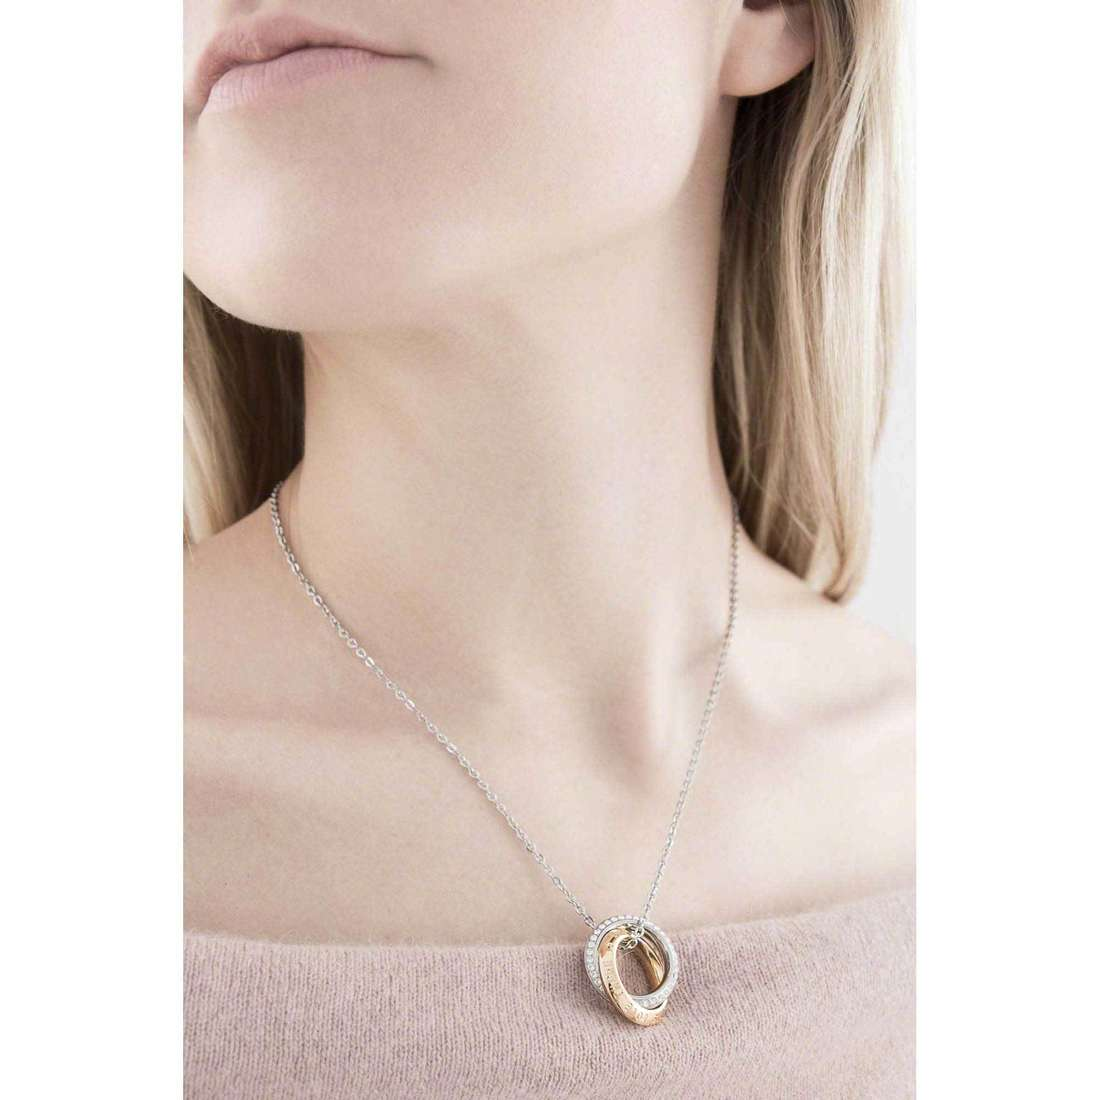 Brosway necklaces Romeo & Juliet woman BRJ46 indosso